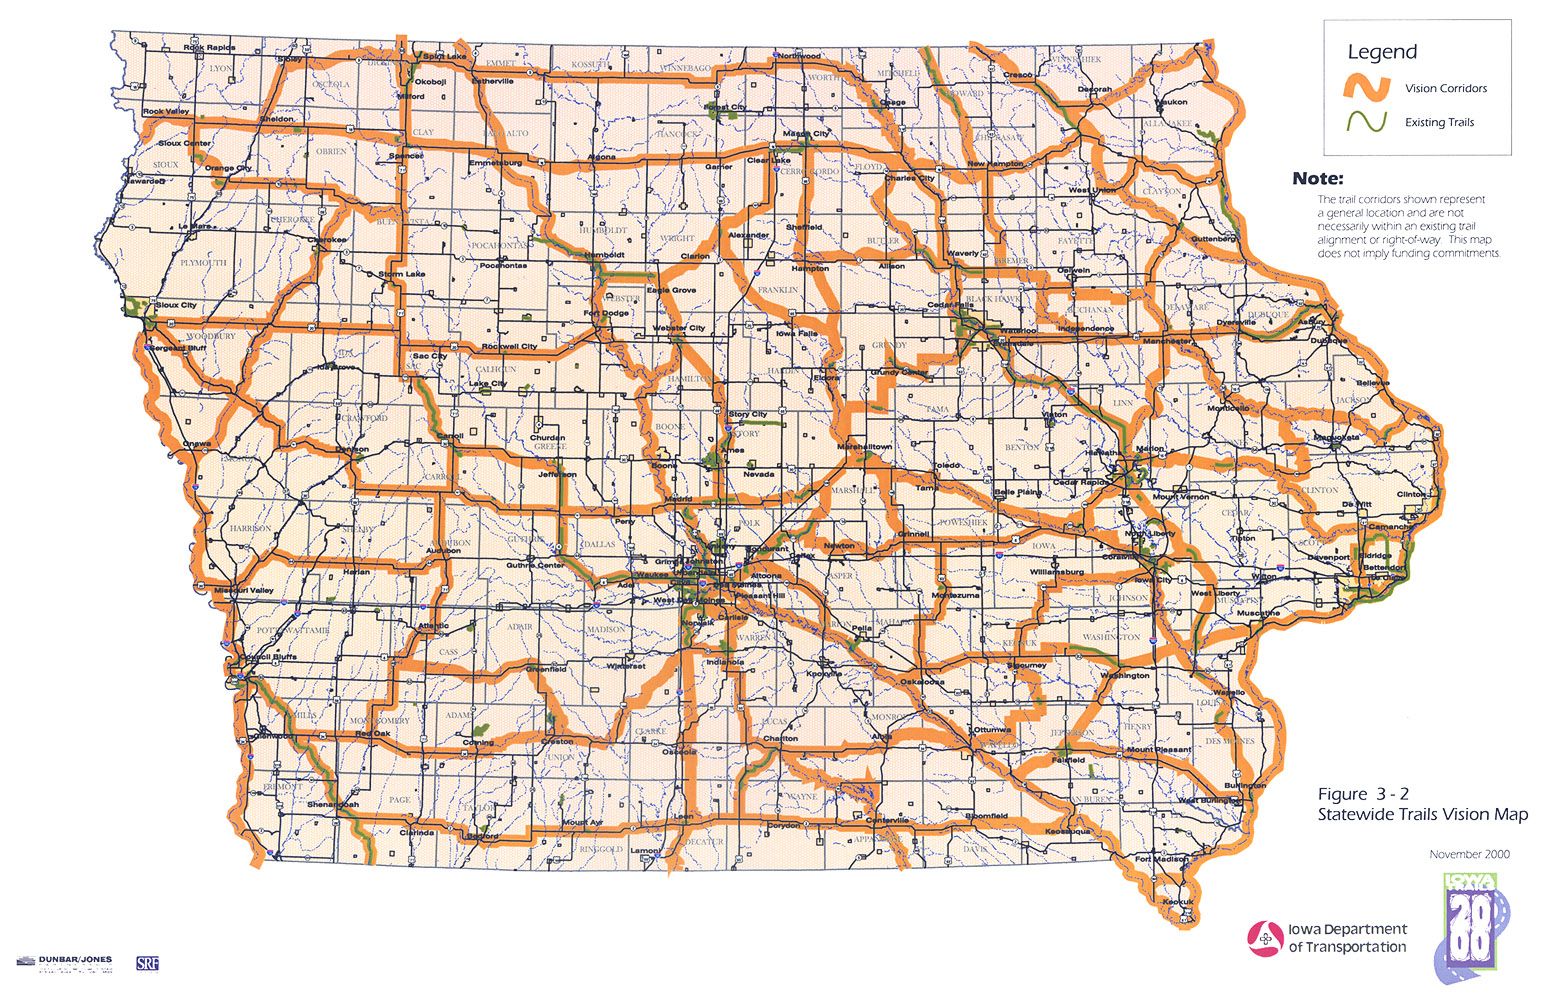 Iowa Trails Iowa Department Of Transportation - State of iowa map